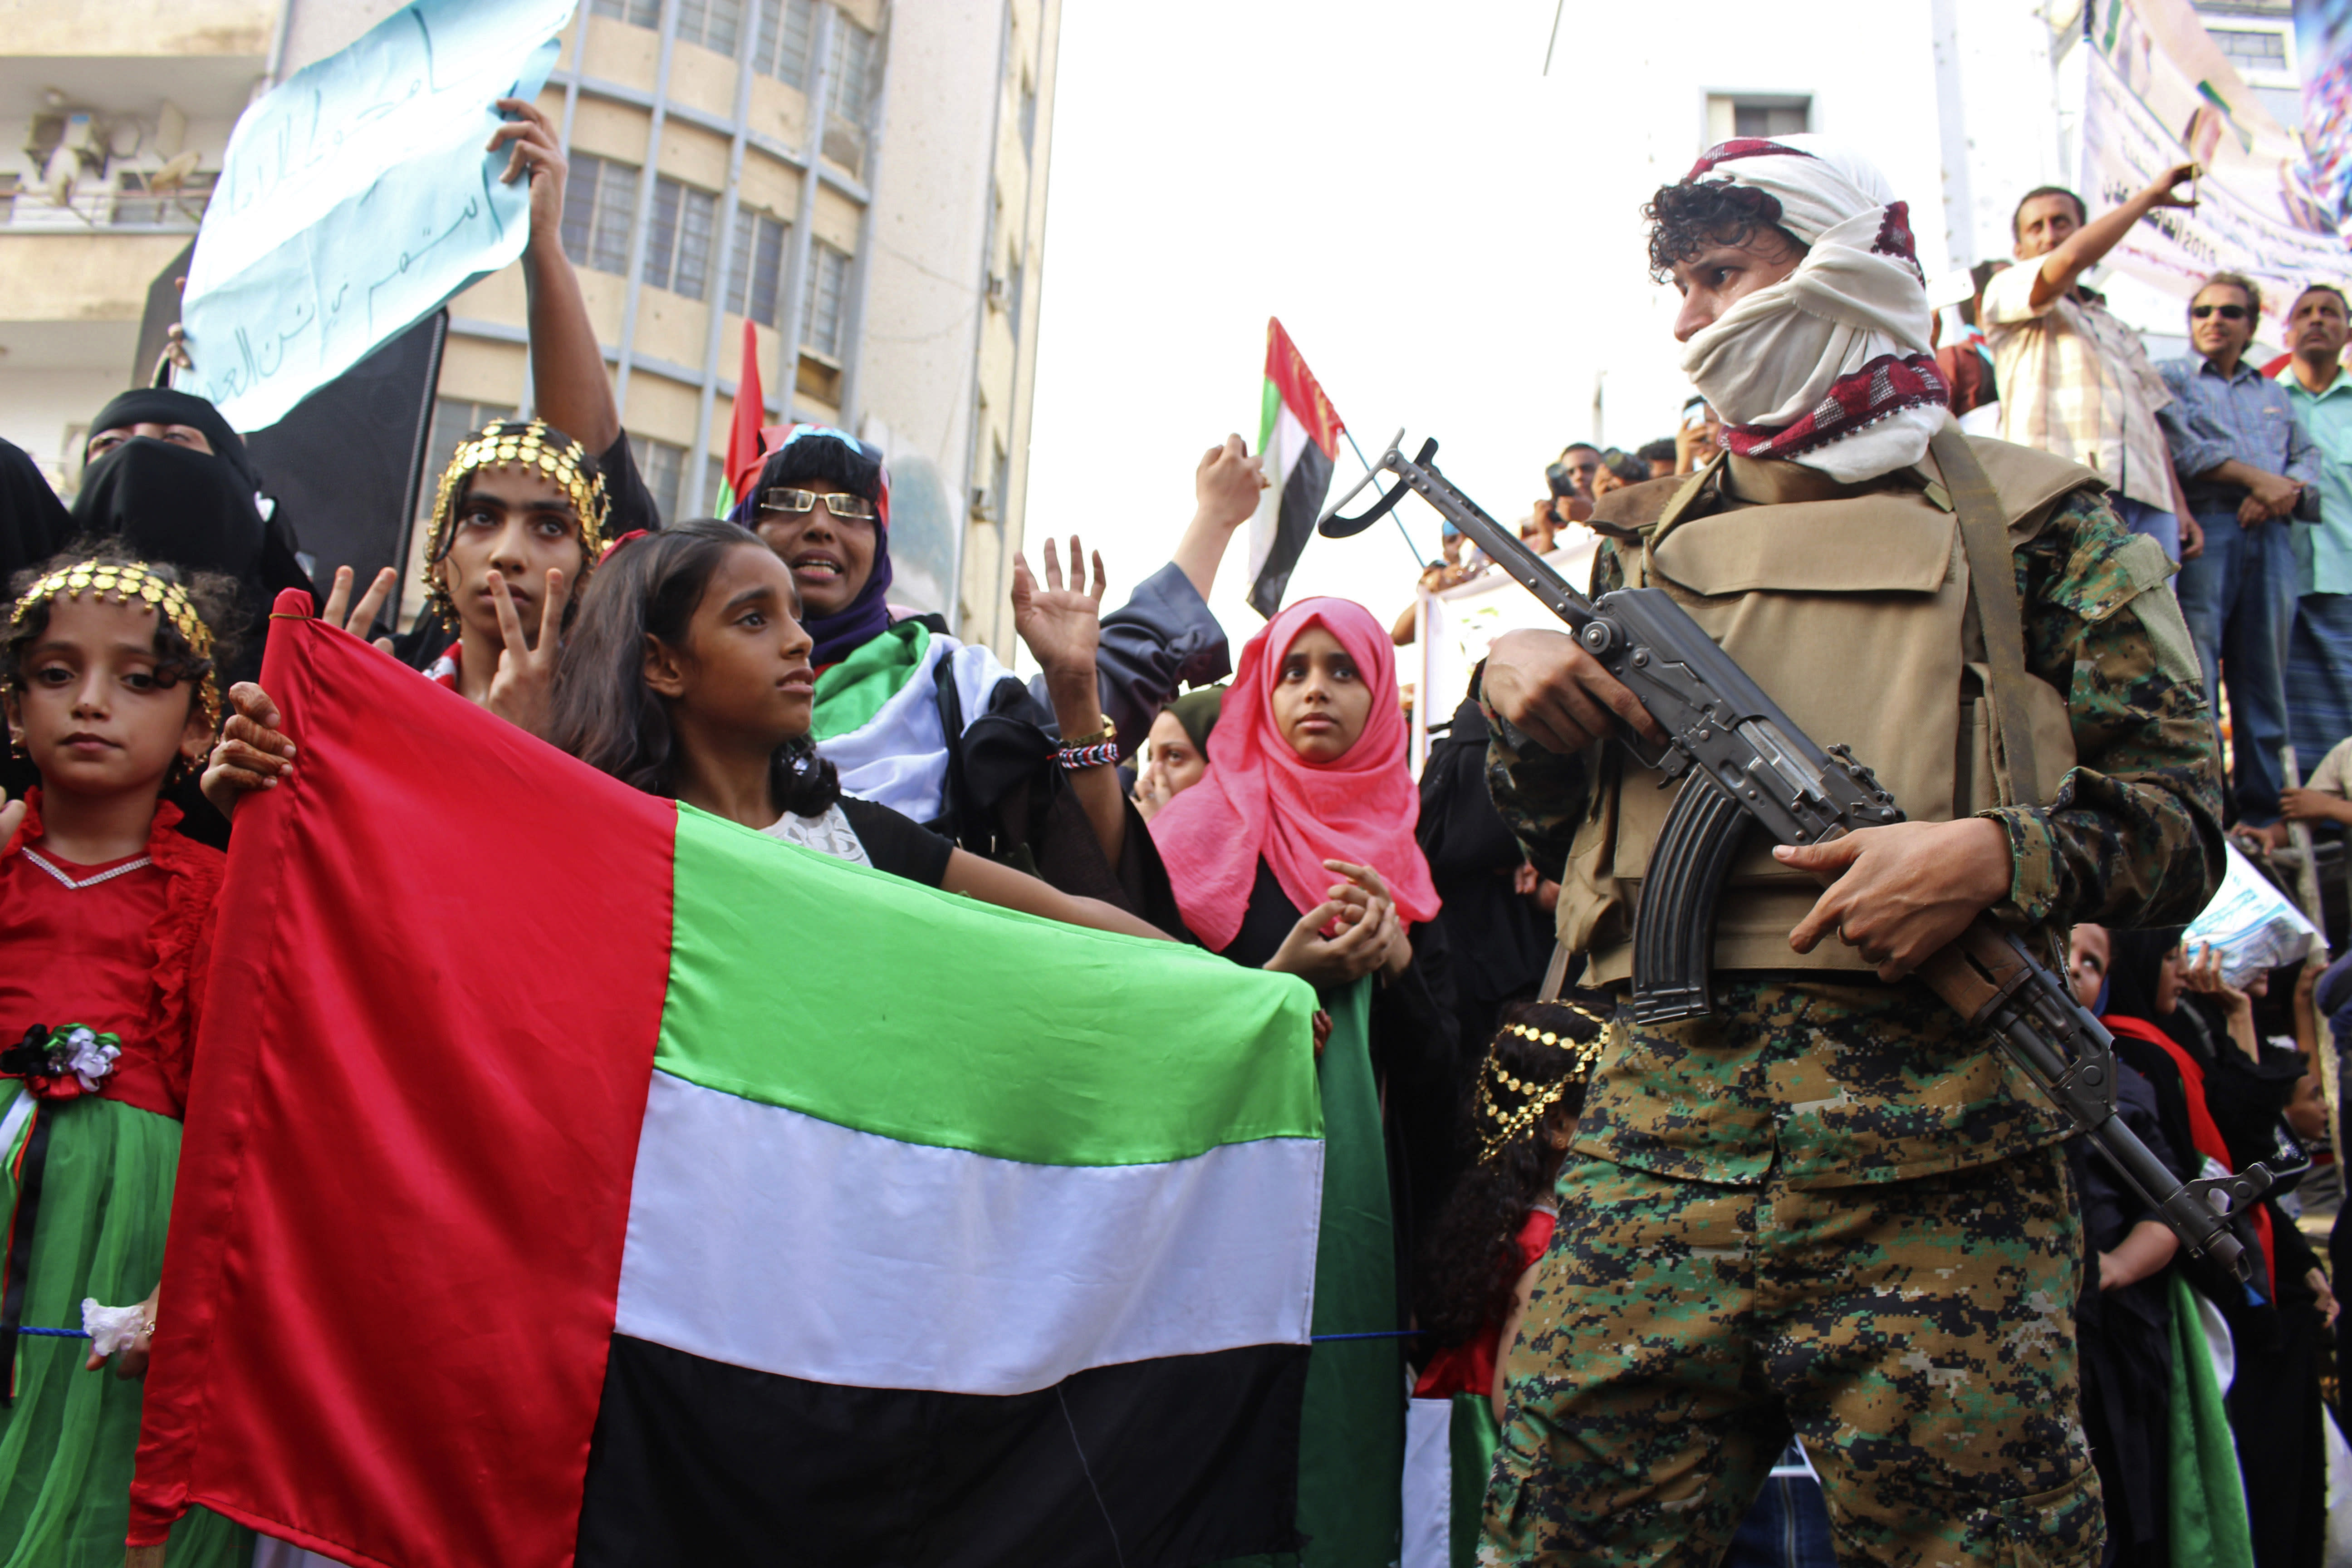 """FILE - In this Sept. 5, 2019 file photo, a girl holds the flag of the United Arab Emirates during a rally of supporters of southern separatists to show support for the UAE amid a standoff with the internationally recognized government, in Aden, Yemen. Human Rights Watch warned Monday, Sept. 14, 2020 that warring parties in Yemen's yearslong conflict are """"severely restricting"""" the delivery of desperately needed aid as the country slides toward famine amid the coronavirus pandemic. (AP Photo/Wail al-Qubaty, File)"""